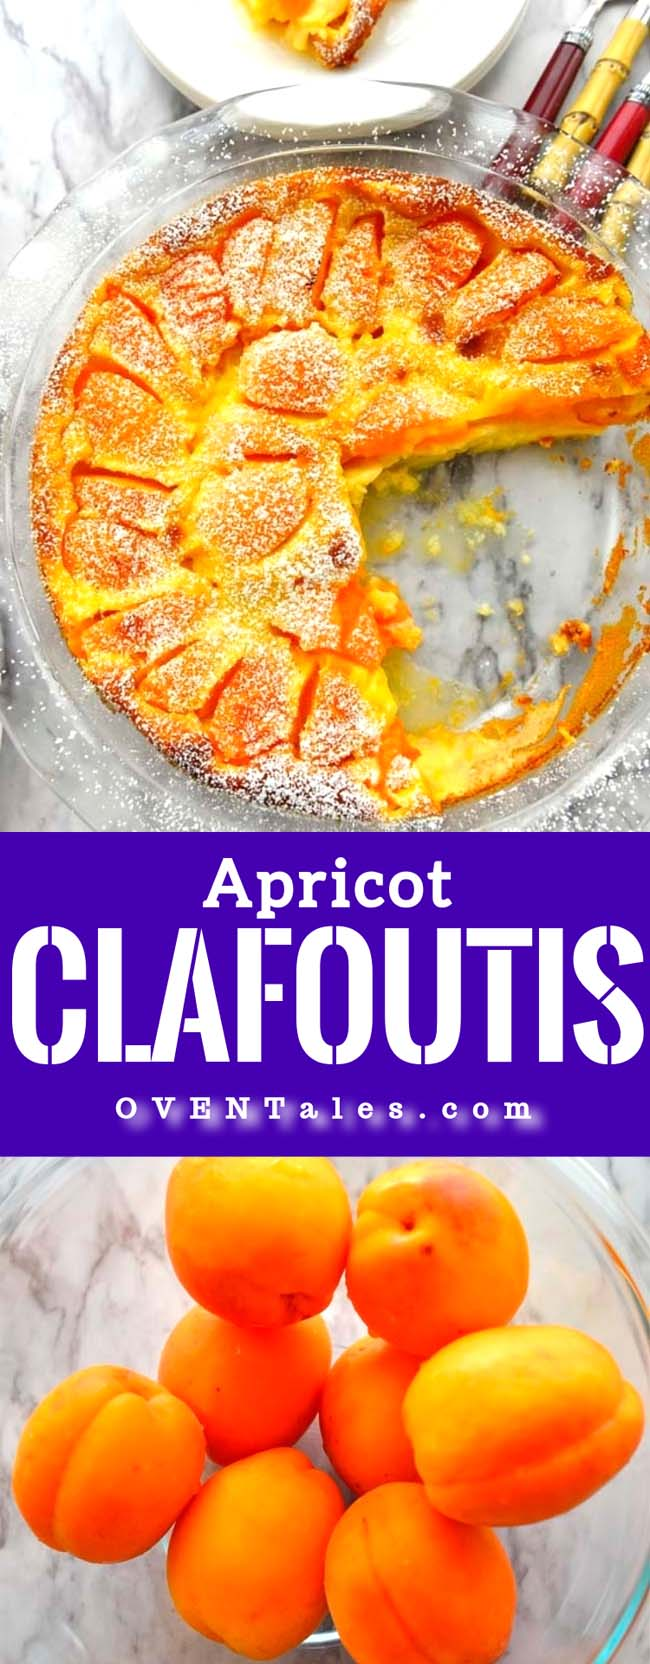 Apricots Clafoutis - An easy and elegant dessert to make and serve